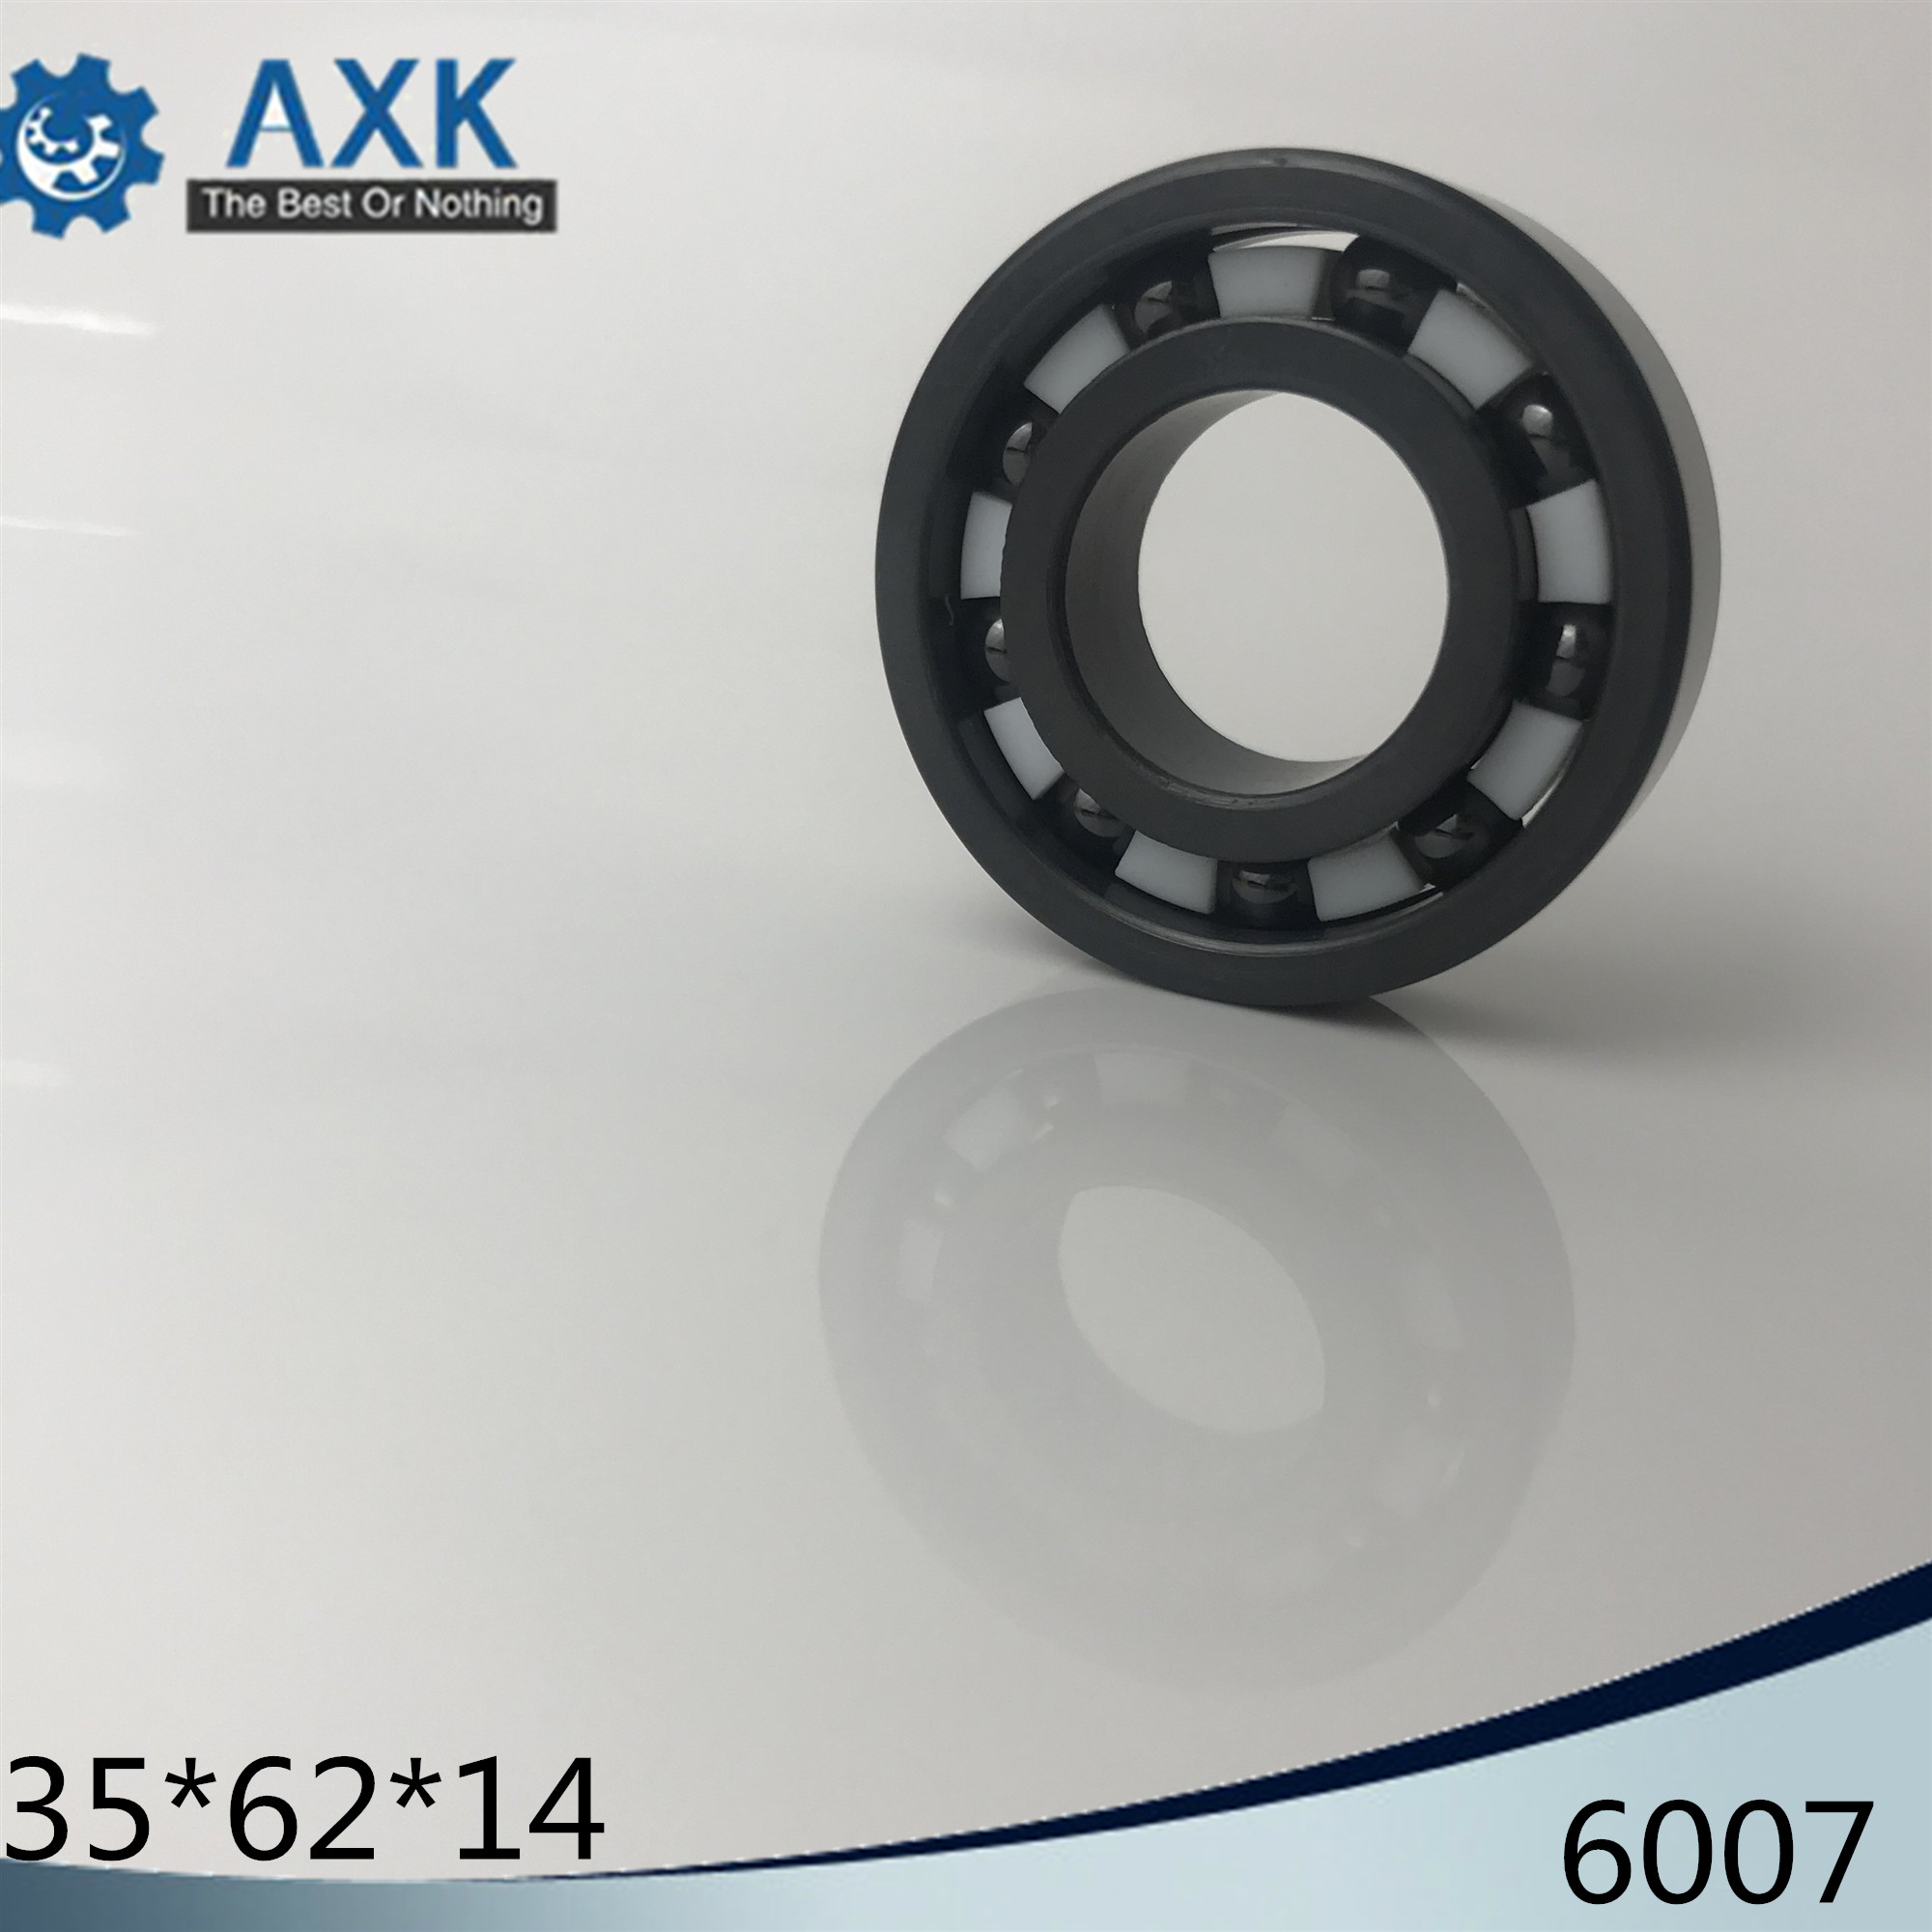 6007 Full Ceramic Bearing ( 1 PC ) 35*62*14 mm Si3N4 Material 6007CE All Silicon Nitride Ceramic Ball Bearings6007 Full Ceramic Bearing ( 1 PC ) 35*62*14 mm Si3N4 Material 6007CE All Silicon Nitride Ceramic Ball Bearings